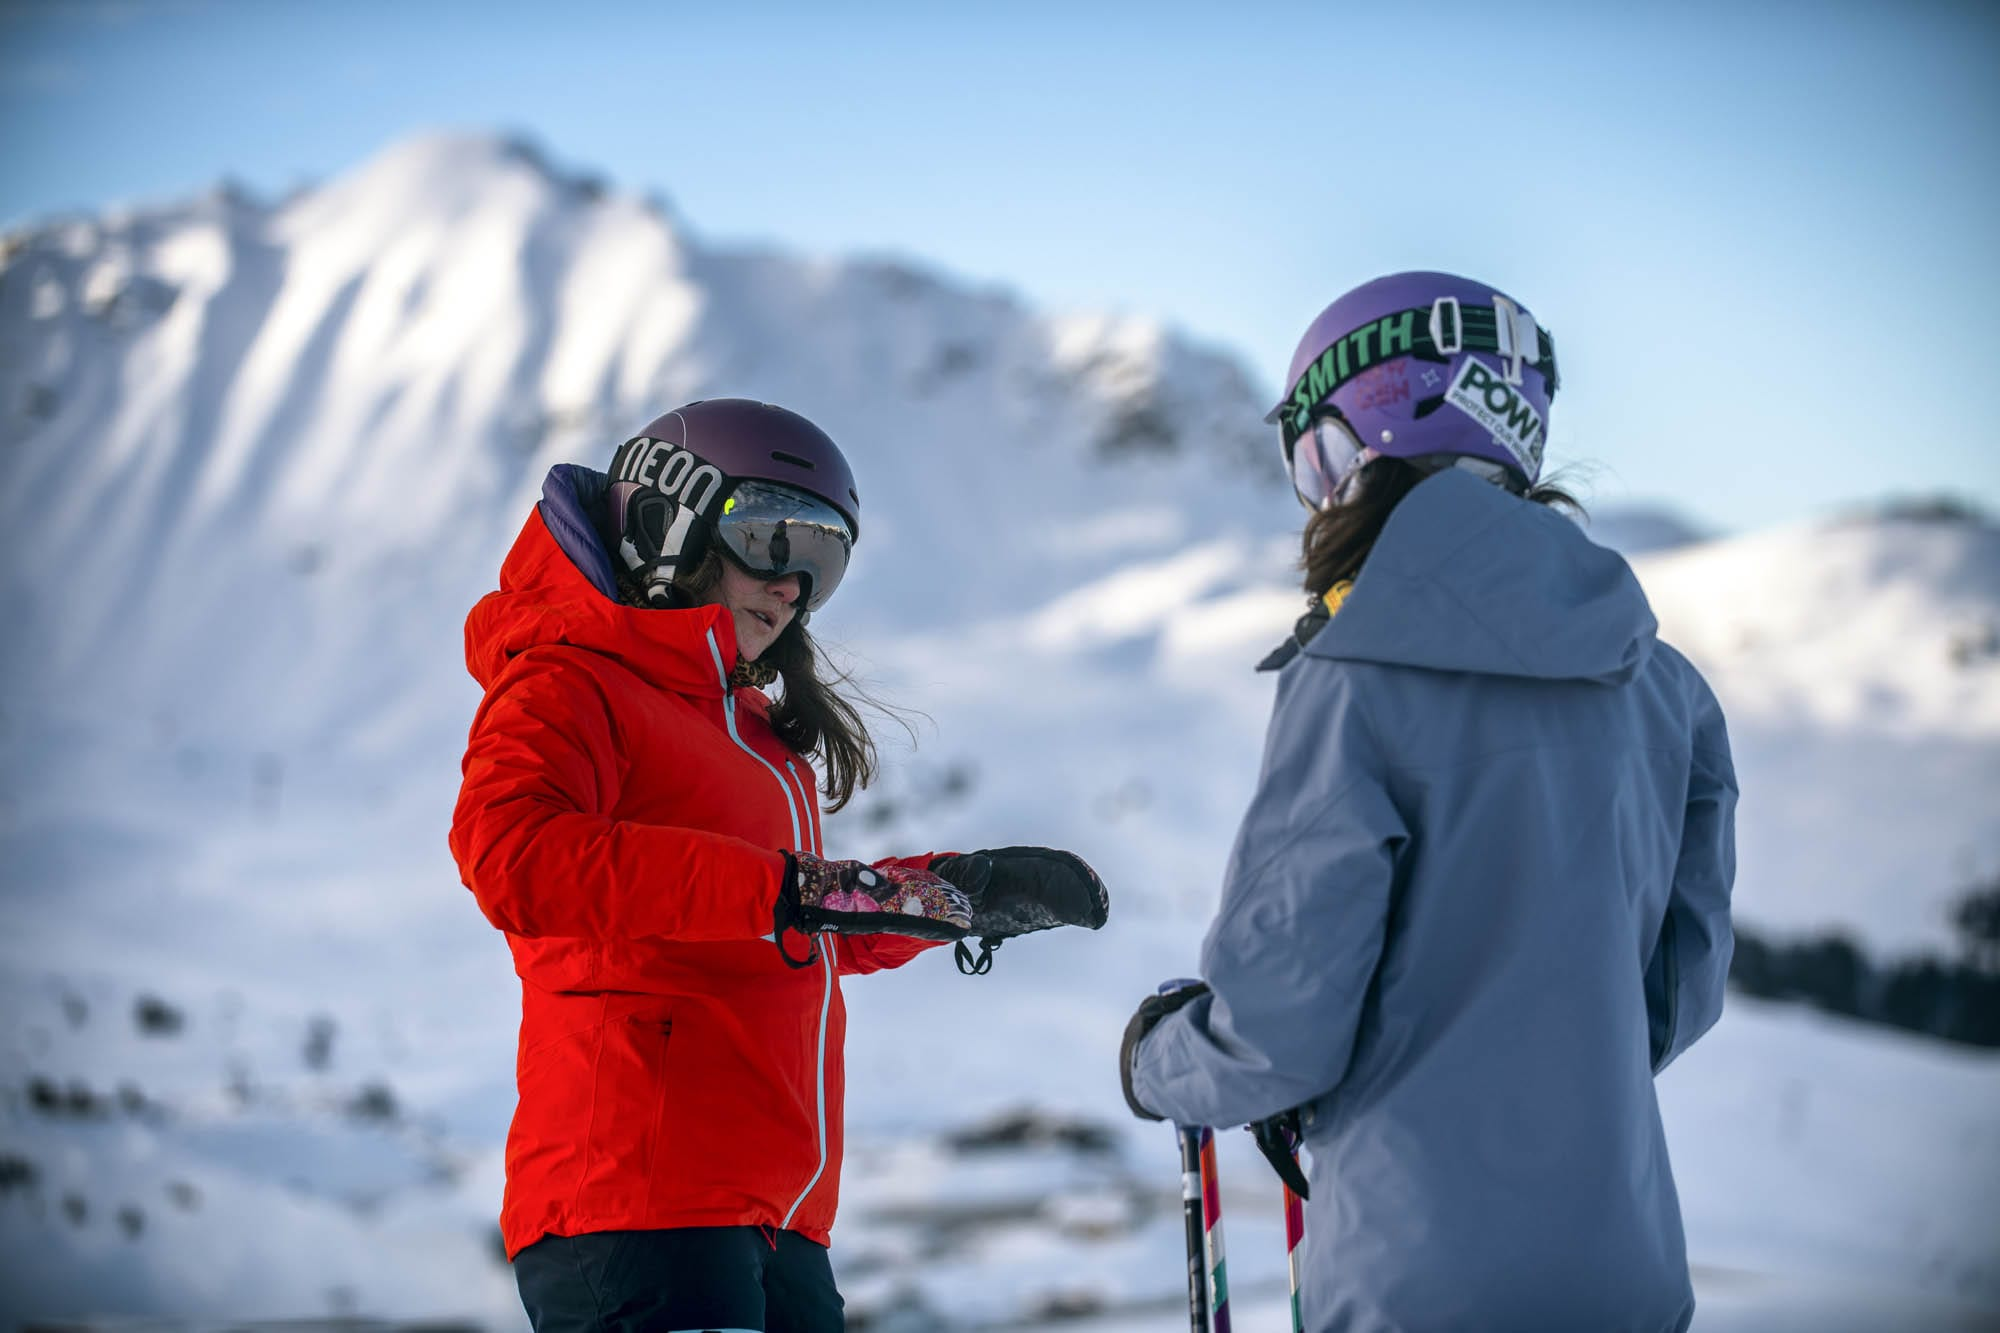 Learning to ski - learn how to ski - ski lessons for beginners